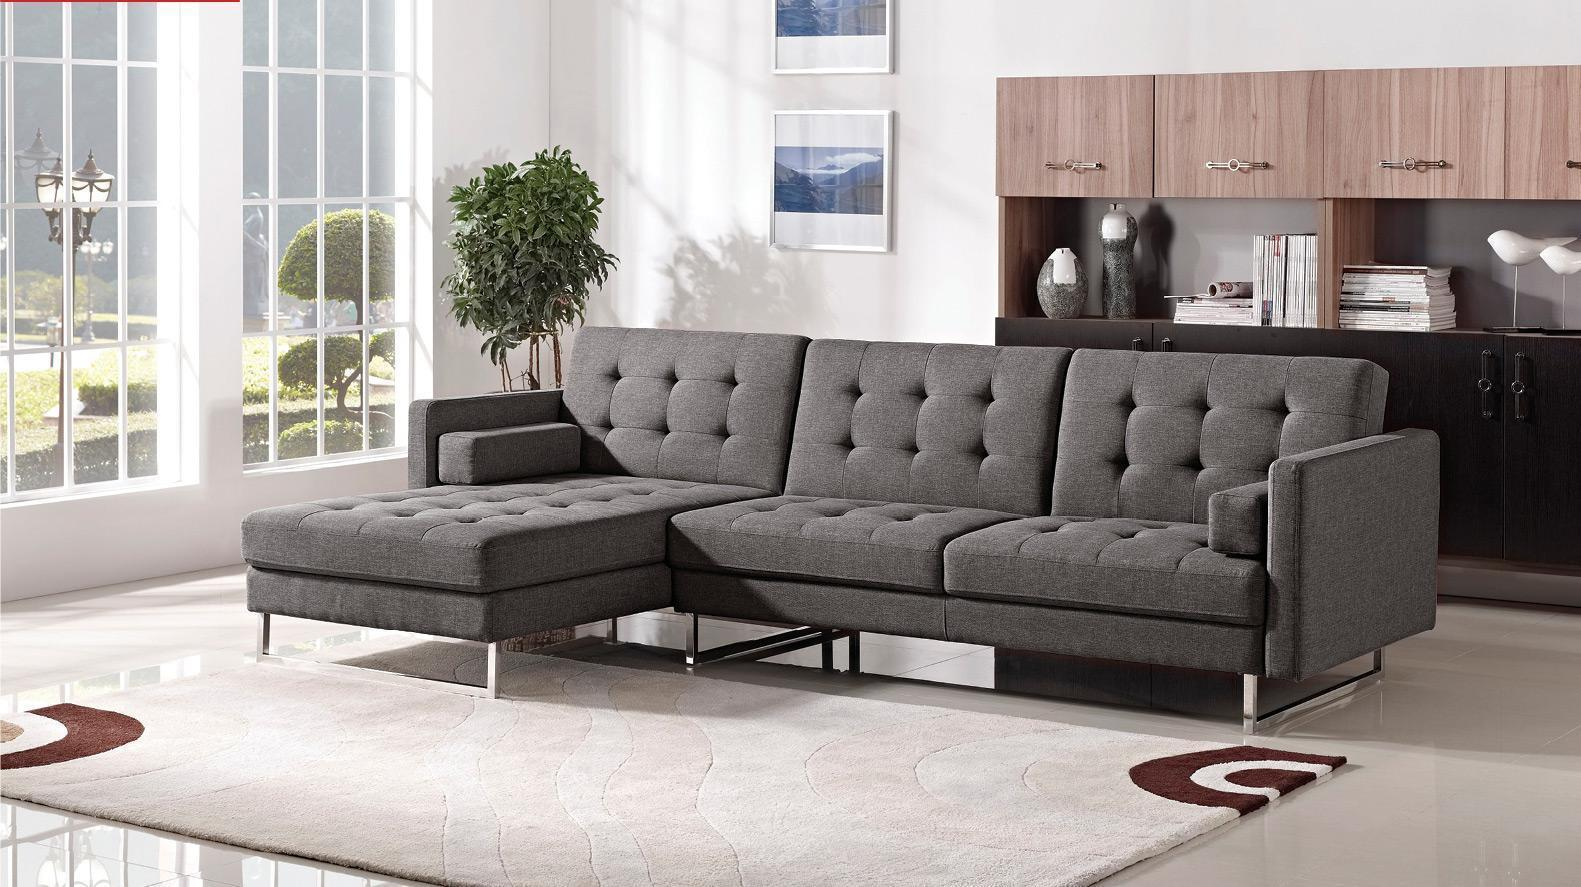 ESF Modern 1471 Grey Fabric Sectional Sofa Left Hand Chaise